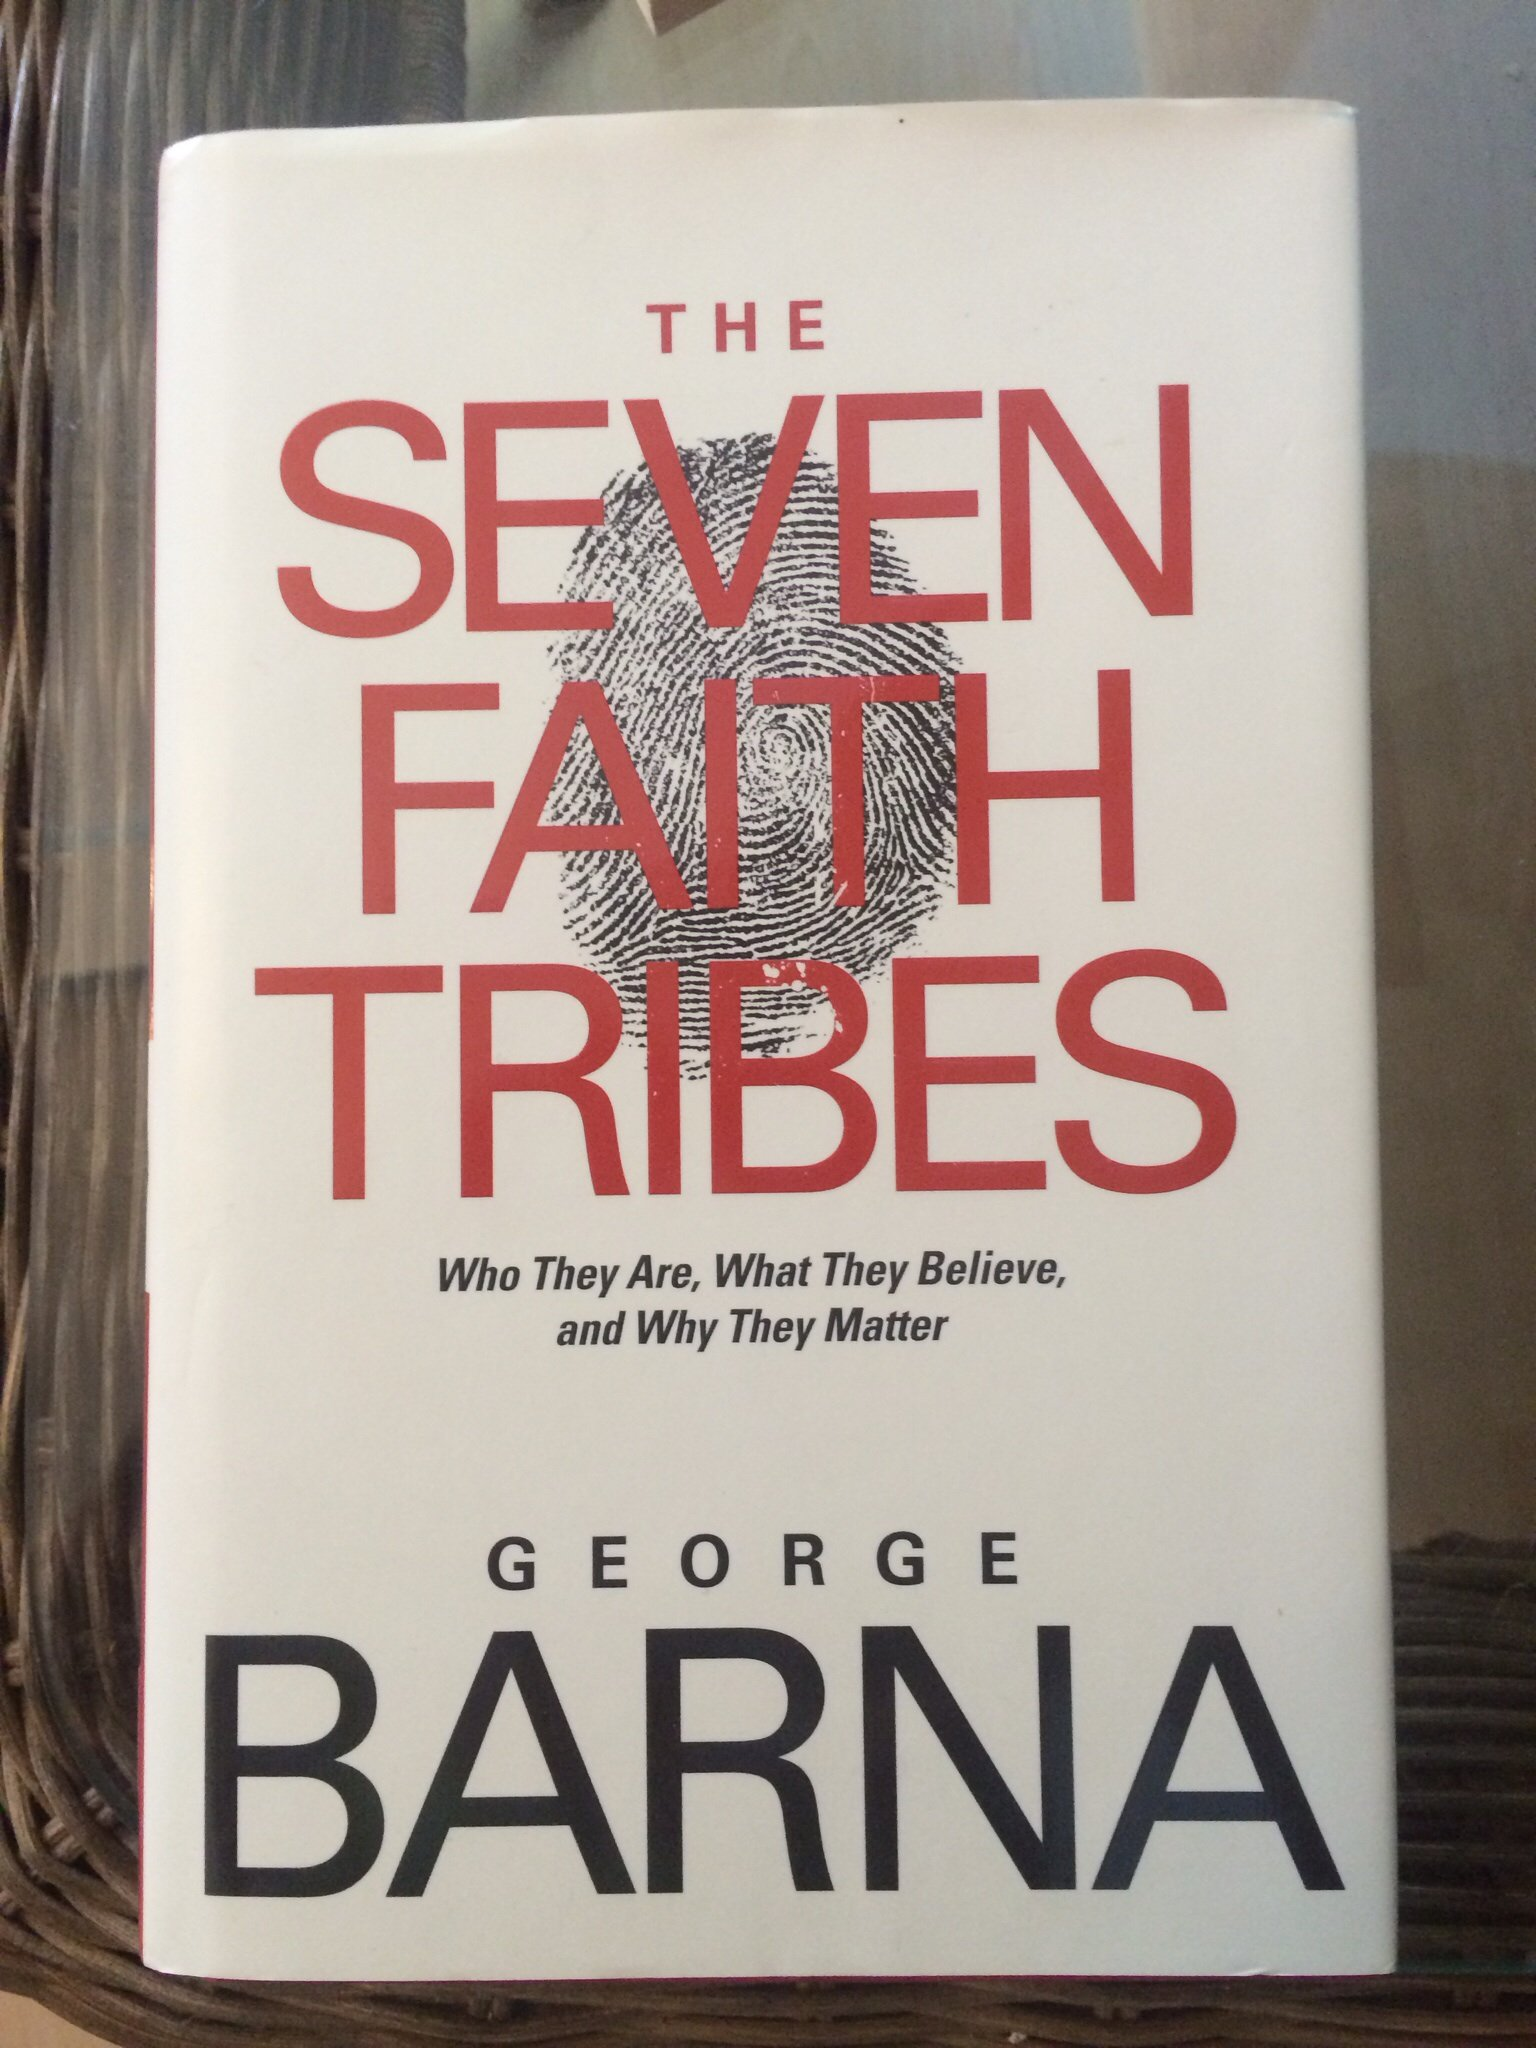 Download The Seven Faith Tribes: Who They Are, What They Believe, and Why They MatterTHE SEVEN FAITH TRIBES: WHO THEY ARE, WHAT THEY BELIEVE, AND WHY THEY MATTER by Barna, George (Author) on Apr-16-2009 Hardcover PDF